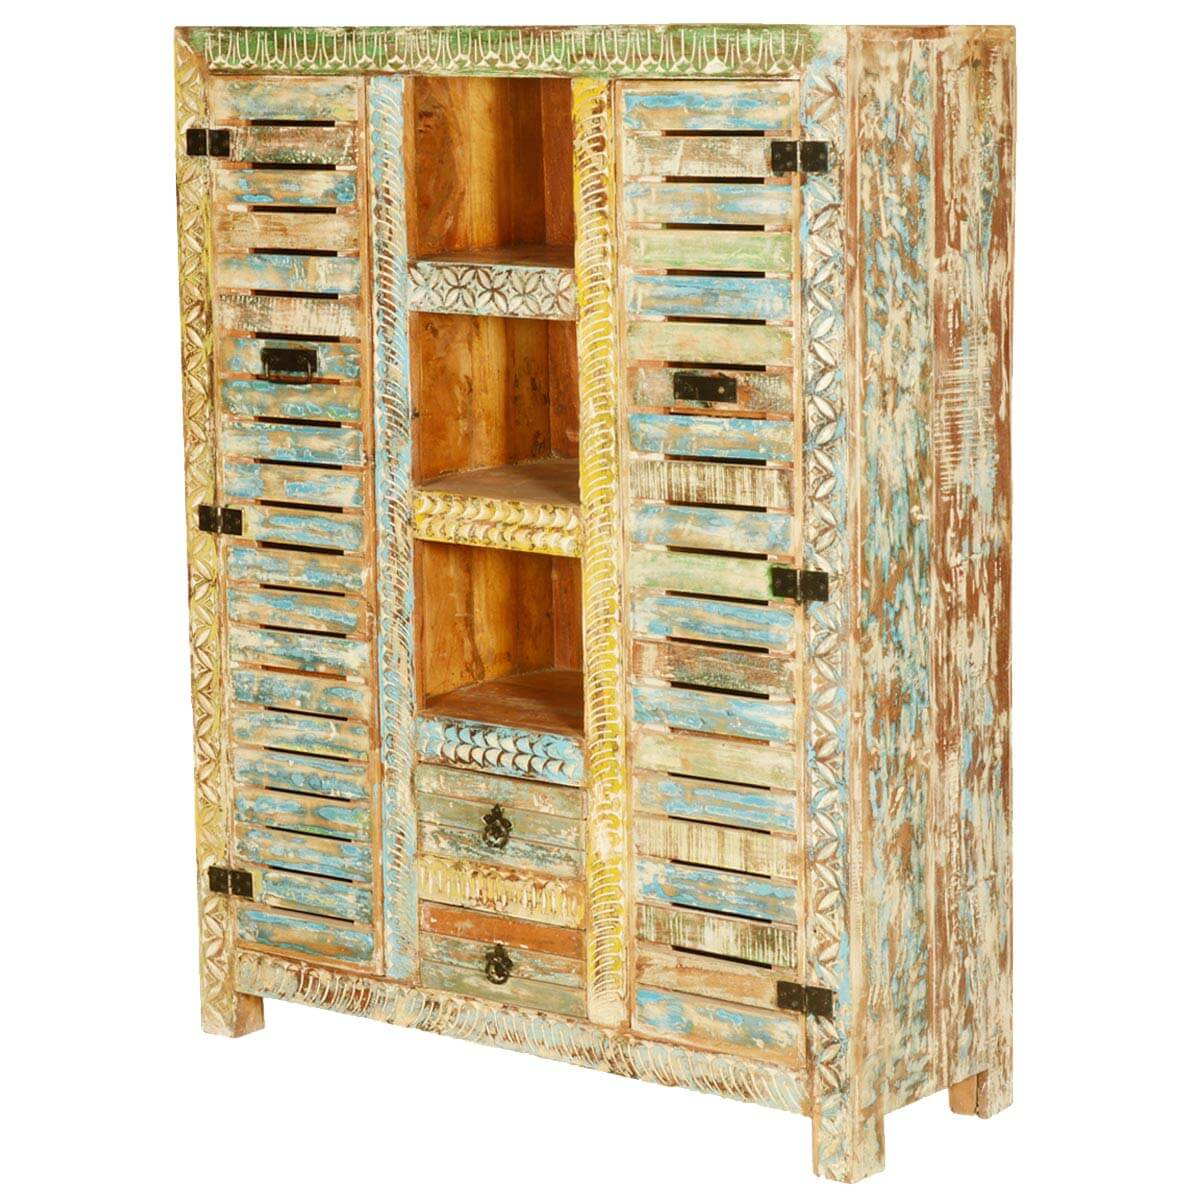 Millville Locker Doors Reclaimed Wood Hand Carved Wall Unit Cabinet